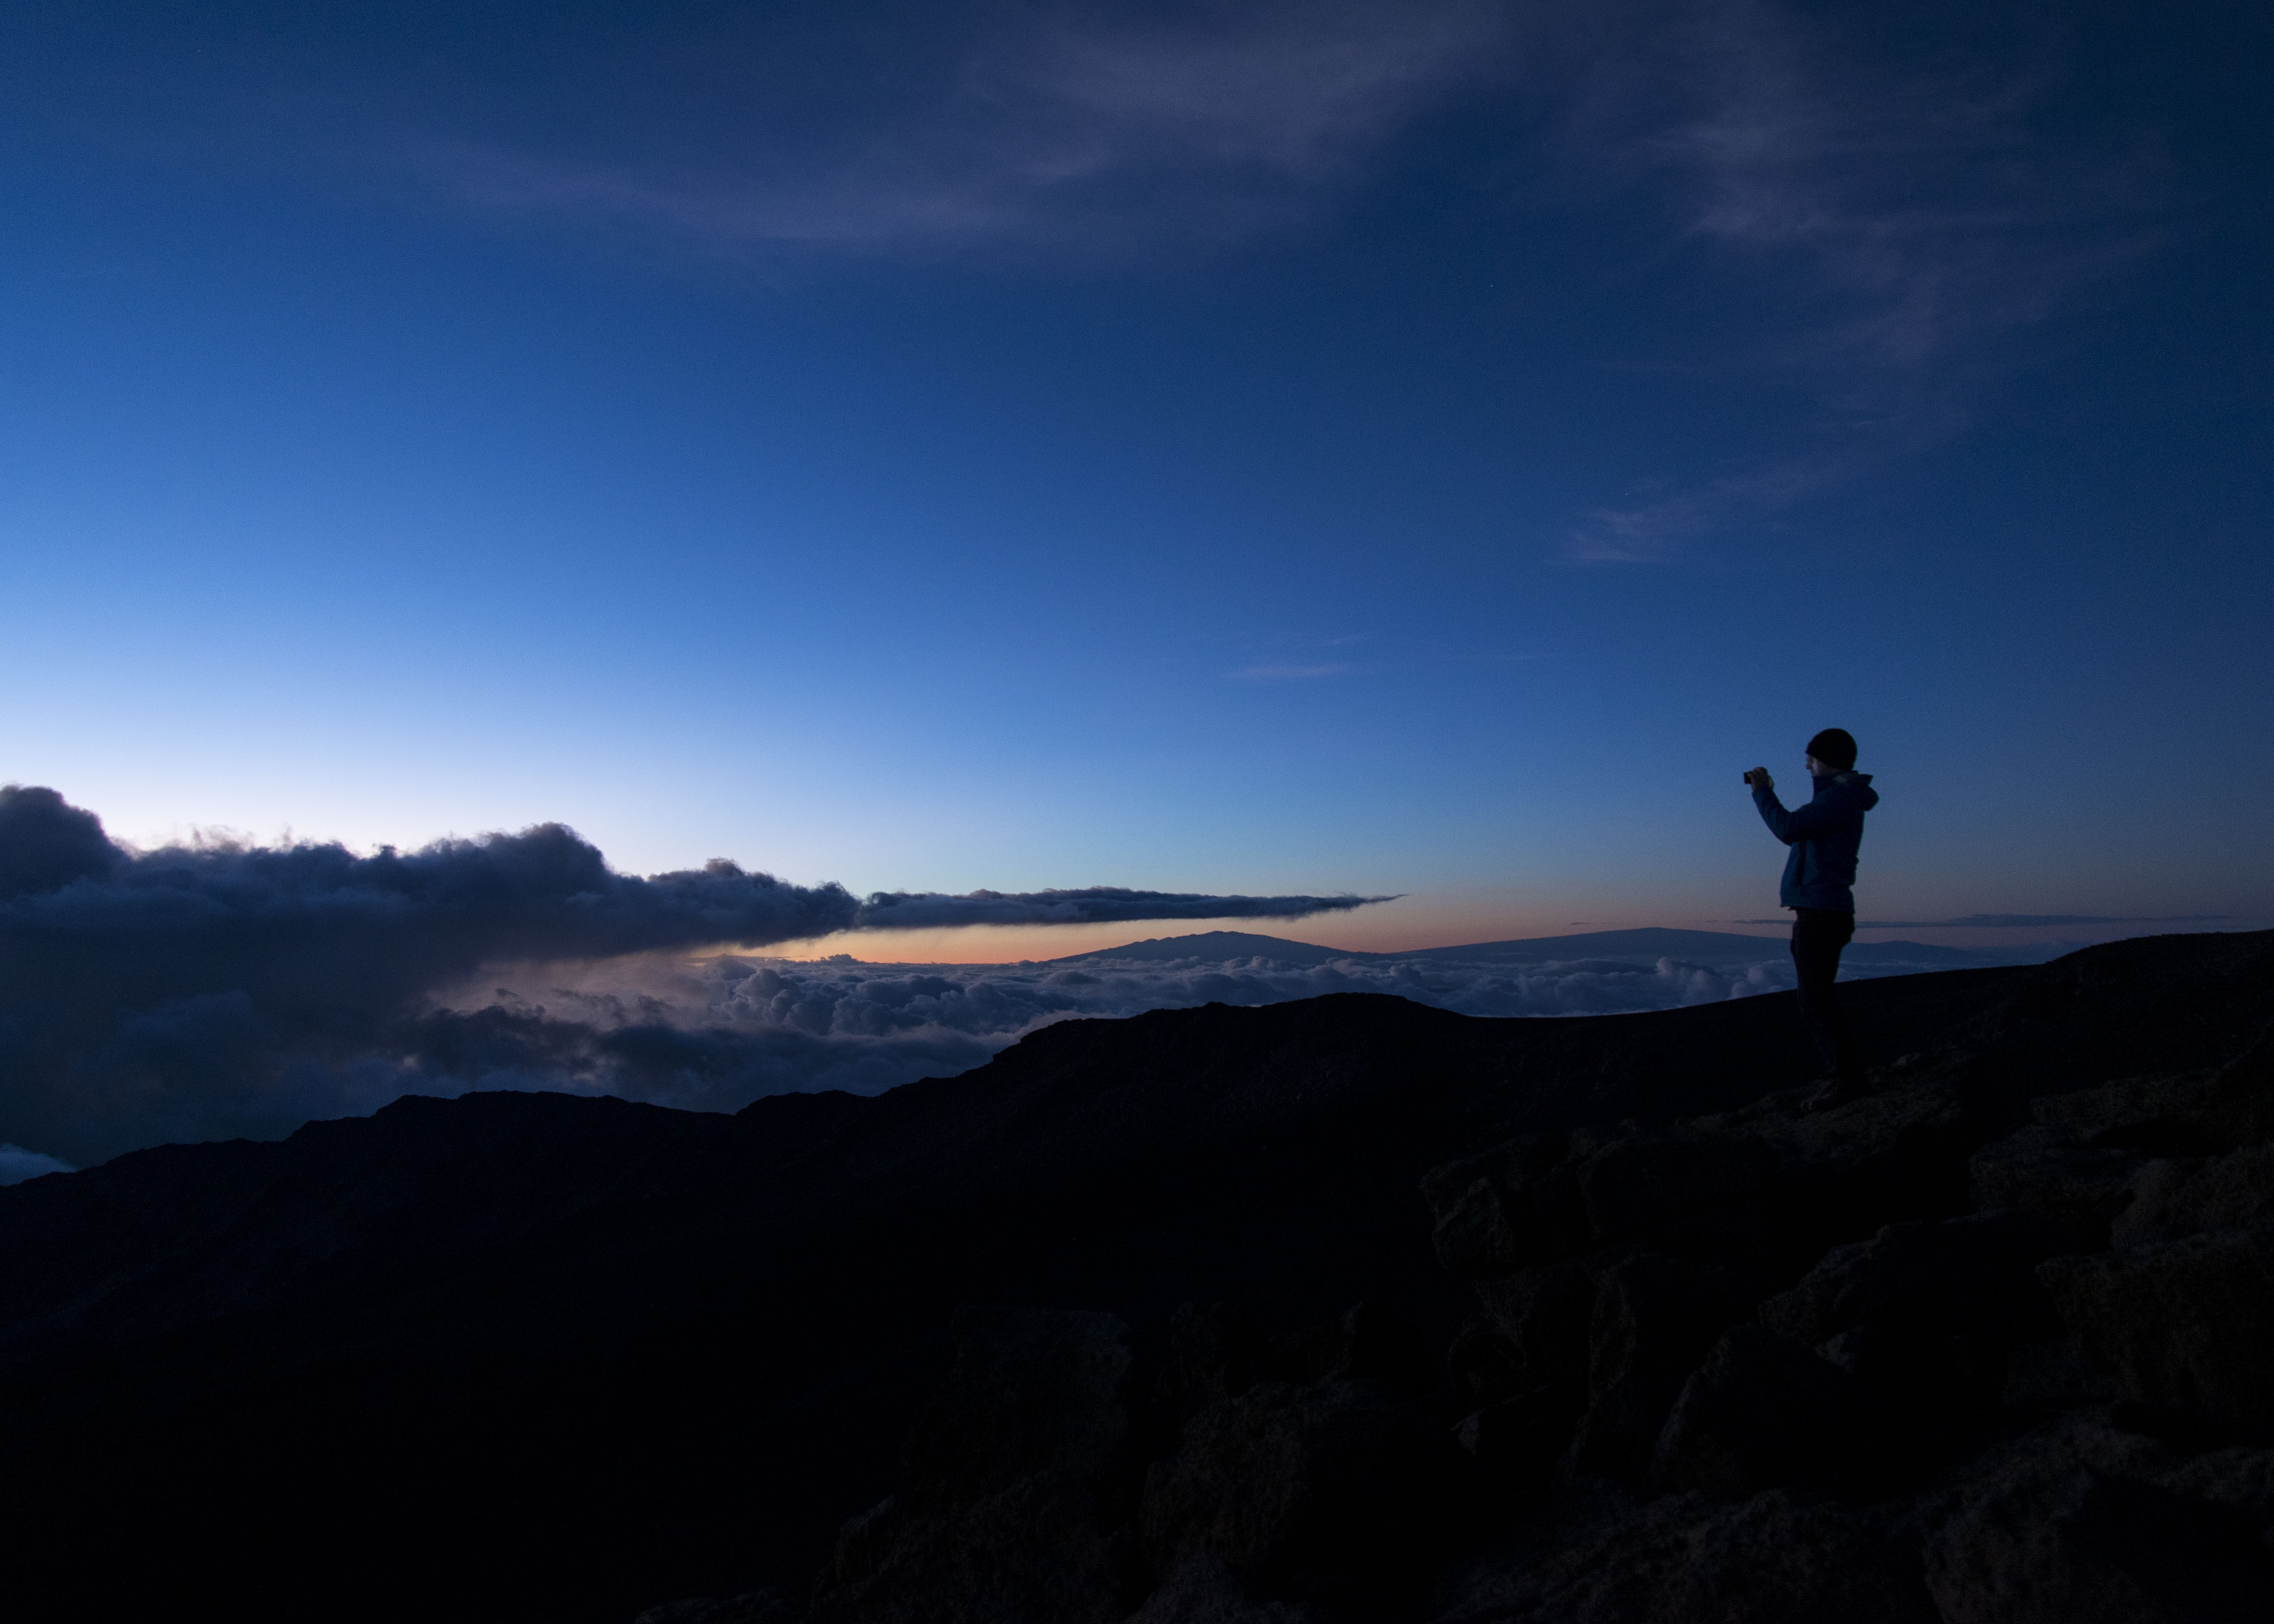 silhouette of man taking photo on rock cliff